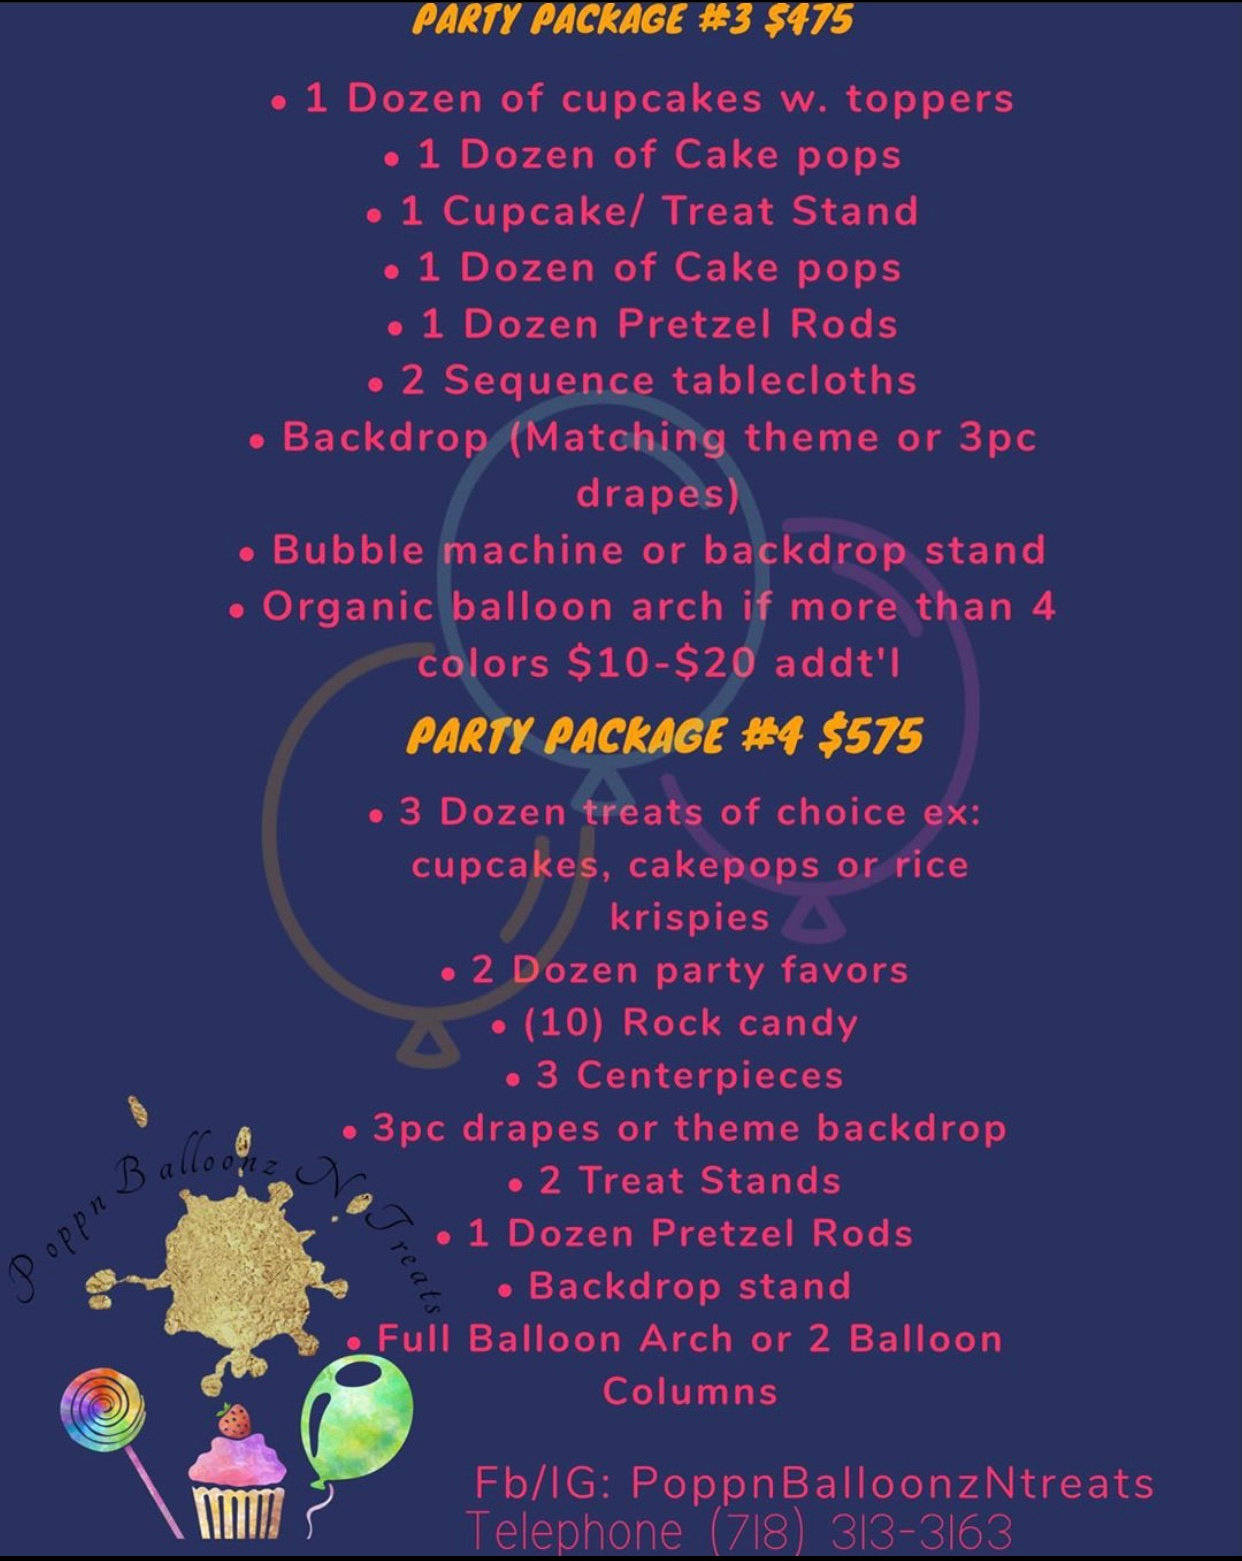 Party Package #3 or #4